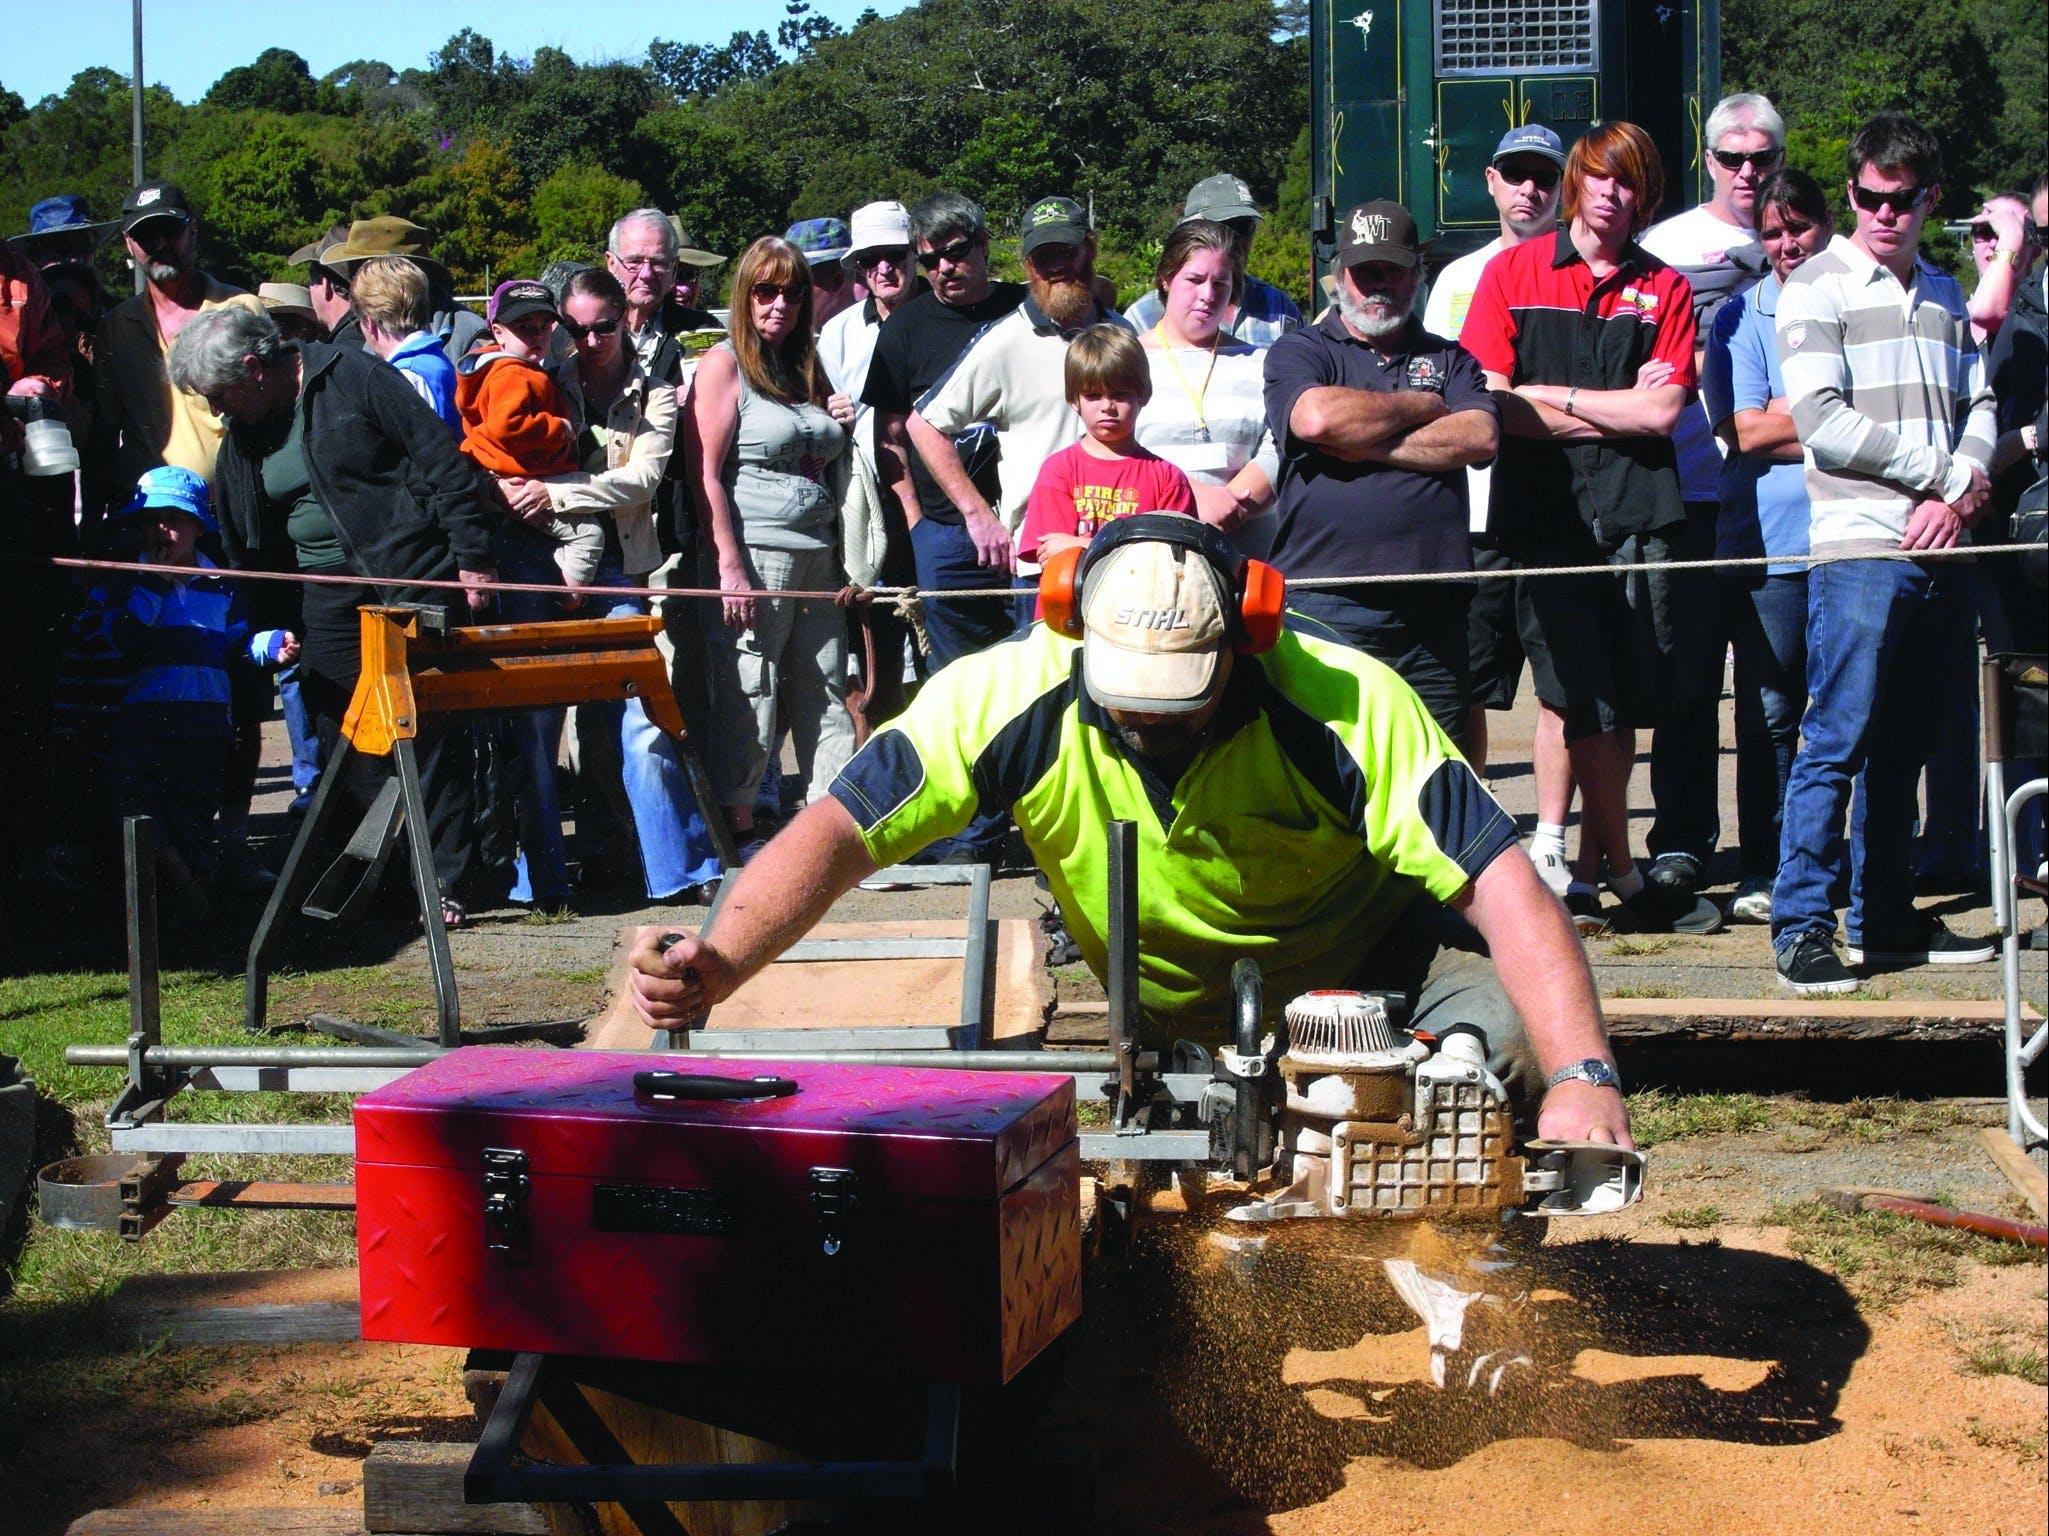 Maleny Wood Expo: From Seed to Fine Furniture Logo and Images